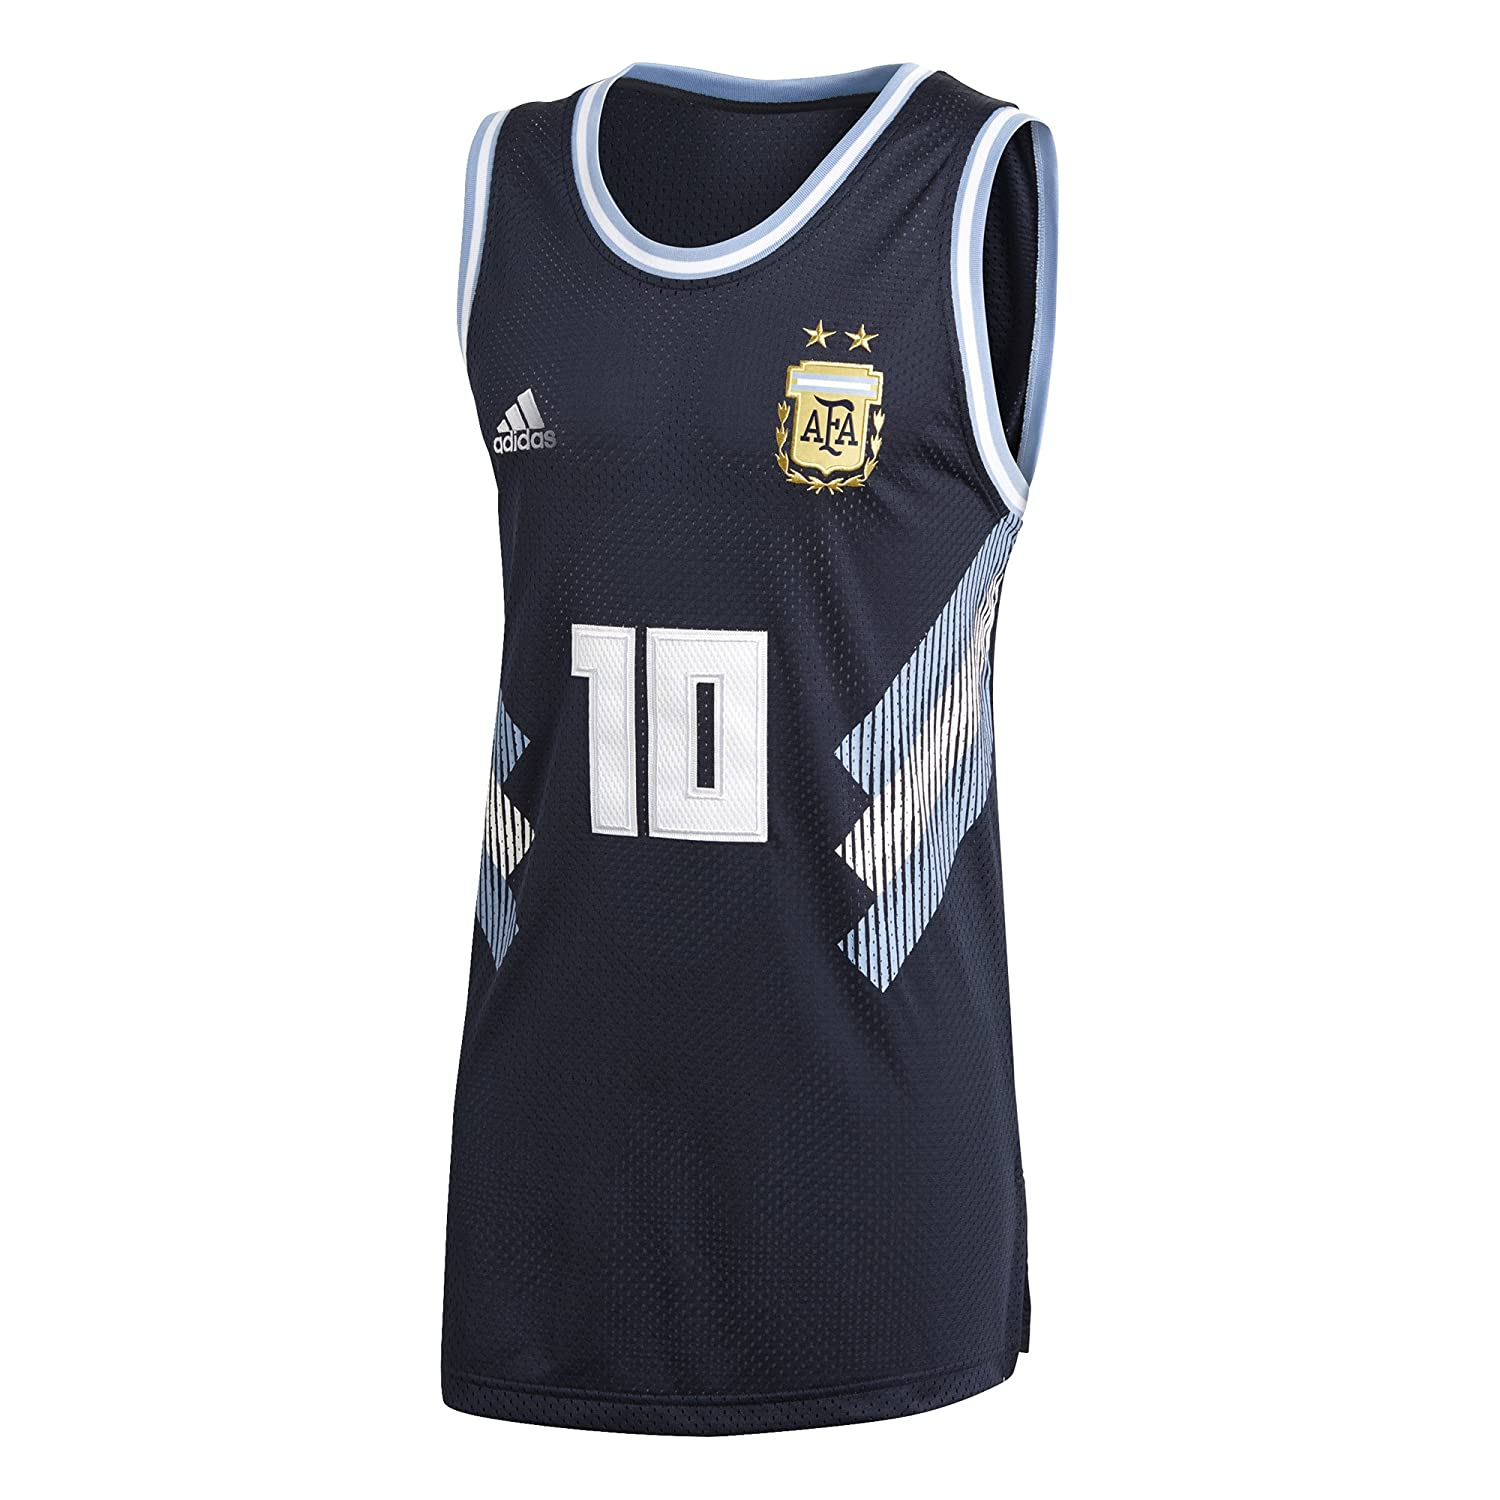 2018-2019 Argentina Adidas Seasonal Special Tank Top (Navy) B07BRKZ3GXNavy Medium 38-40\